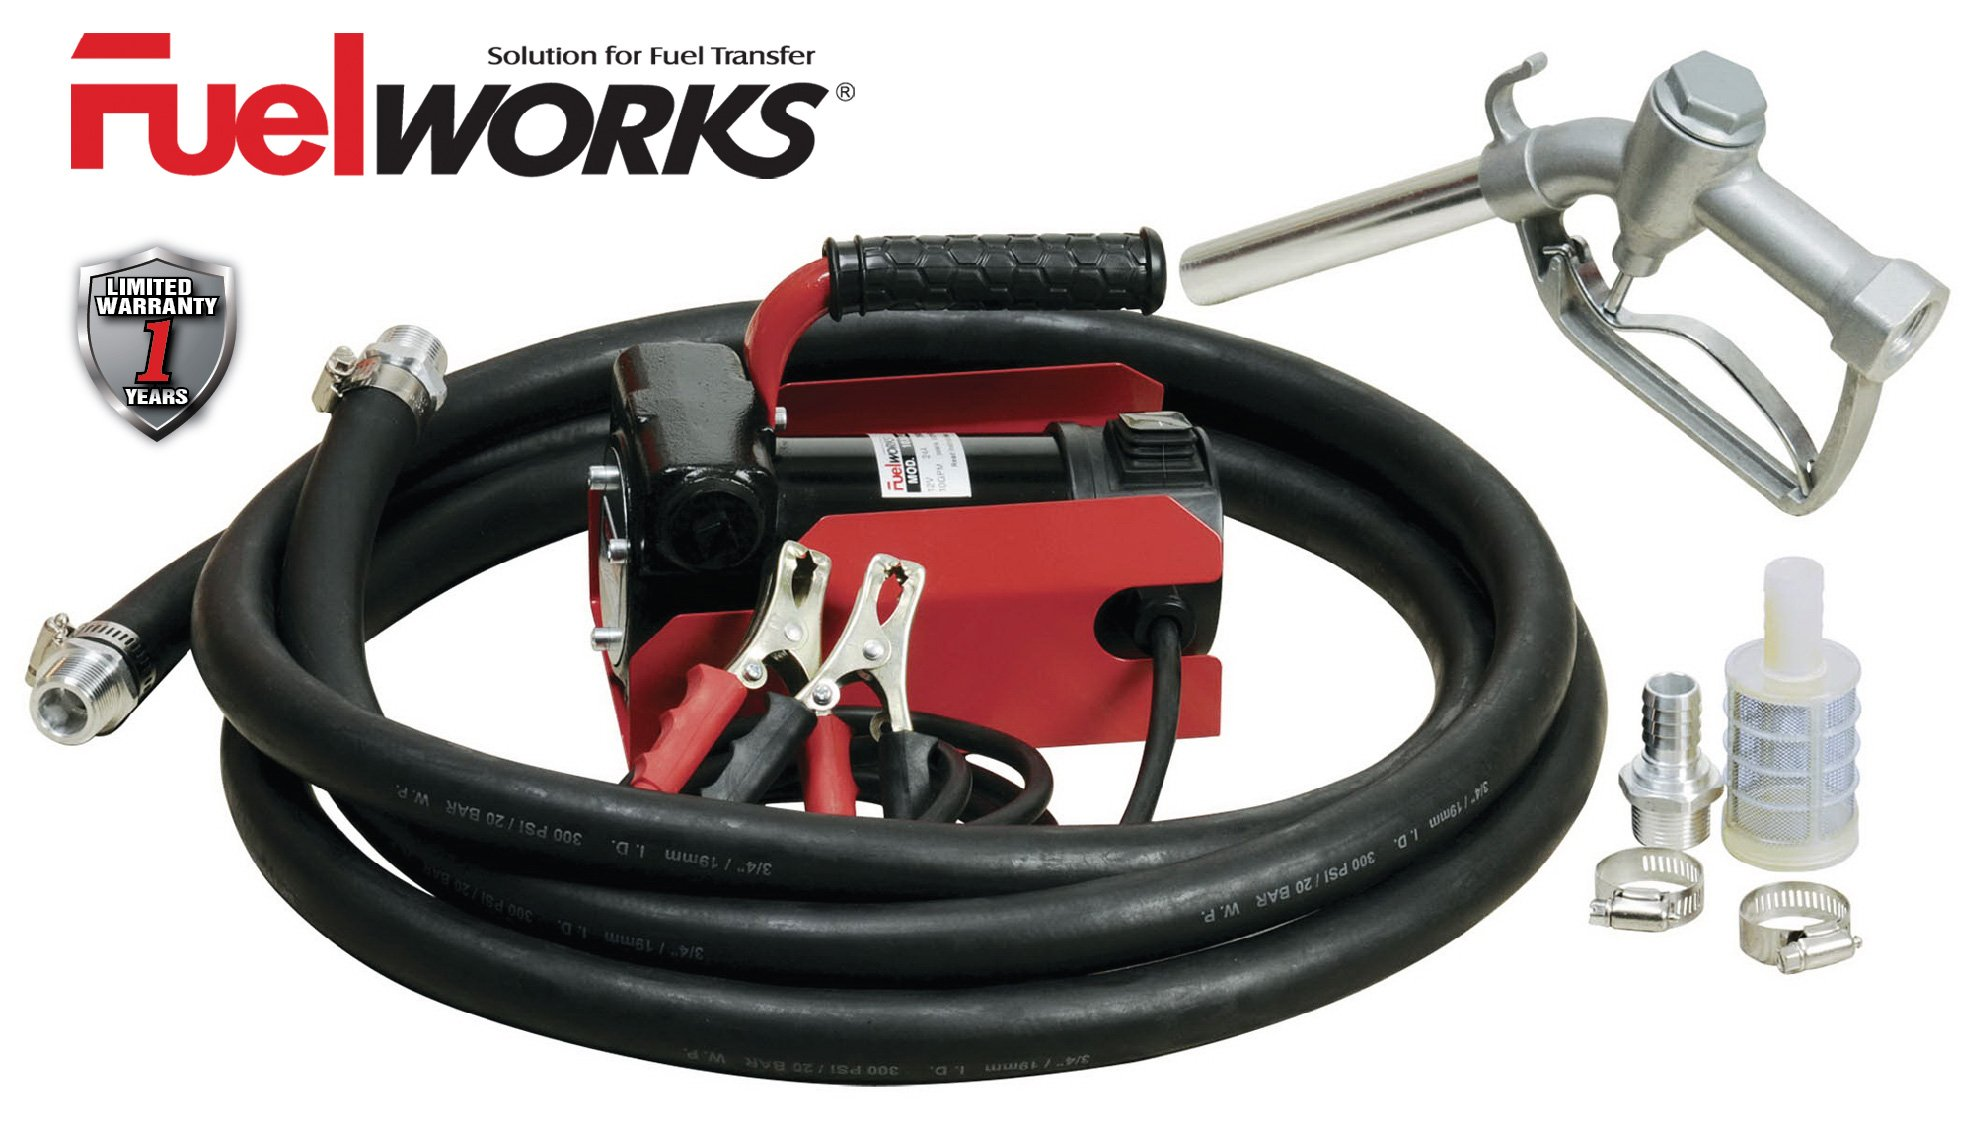 FUELWORKS Electric Diesel Fuel Transfer Pump Kit, 12 Volts & 10 GPM; NOT For Gasoline